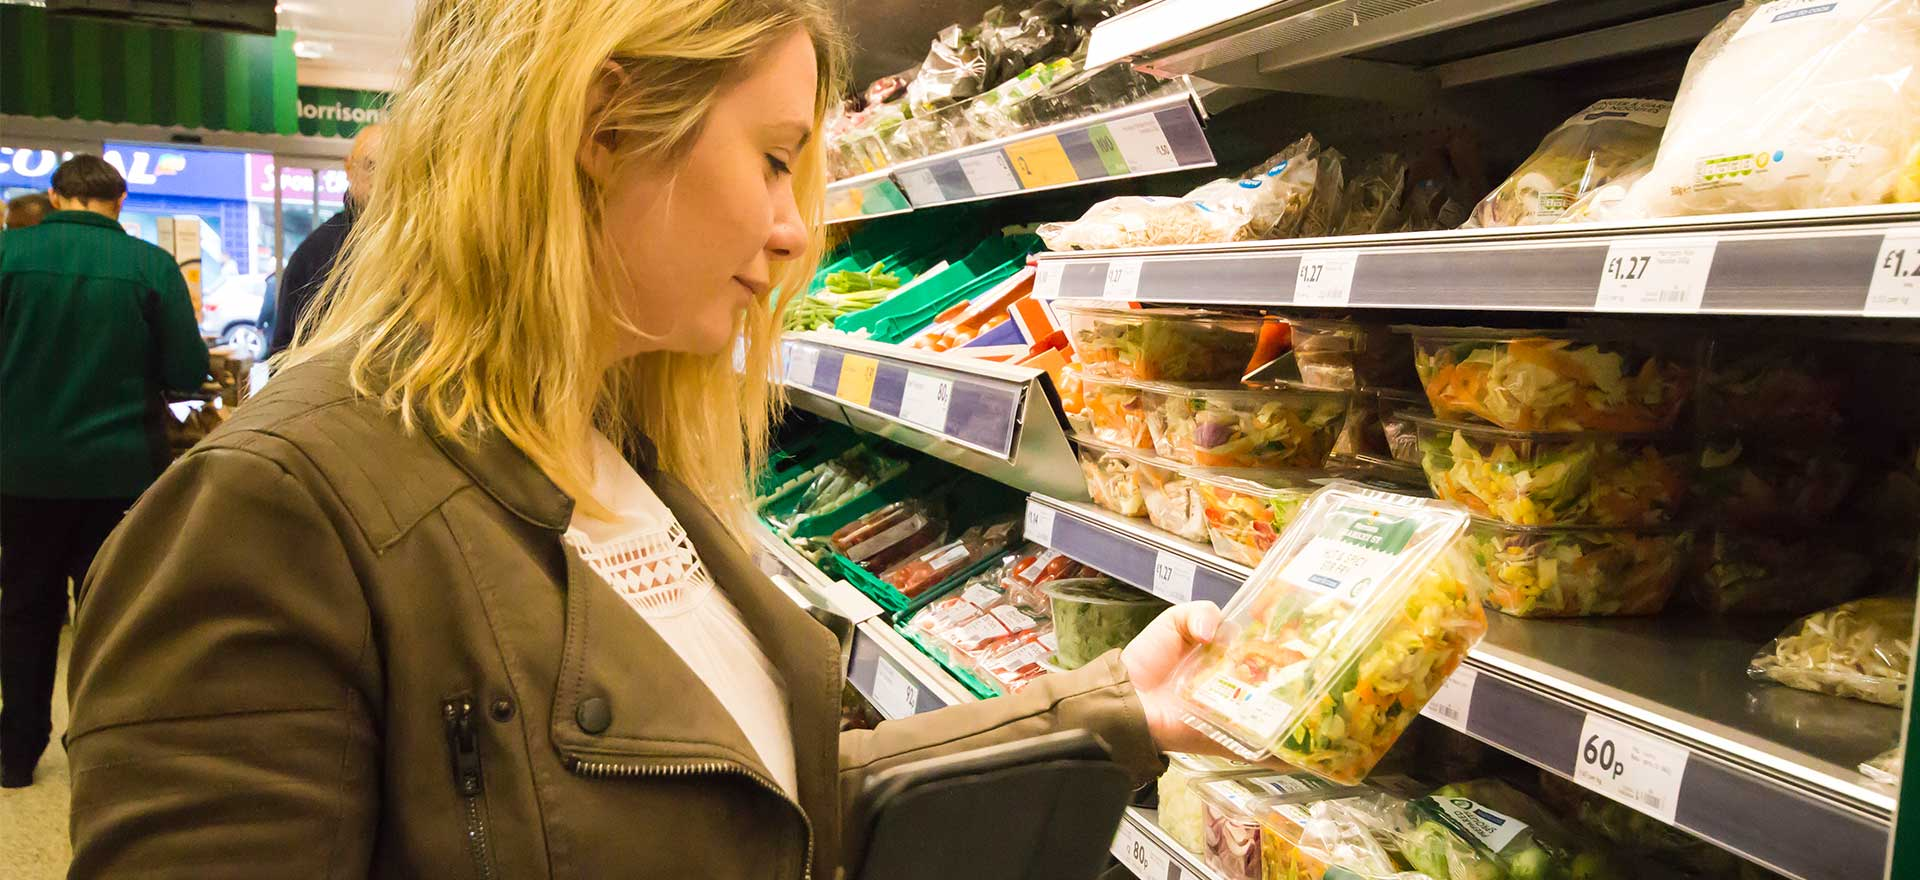 Shopper looking at food product